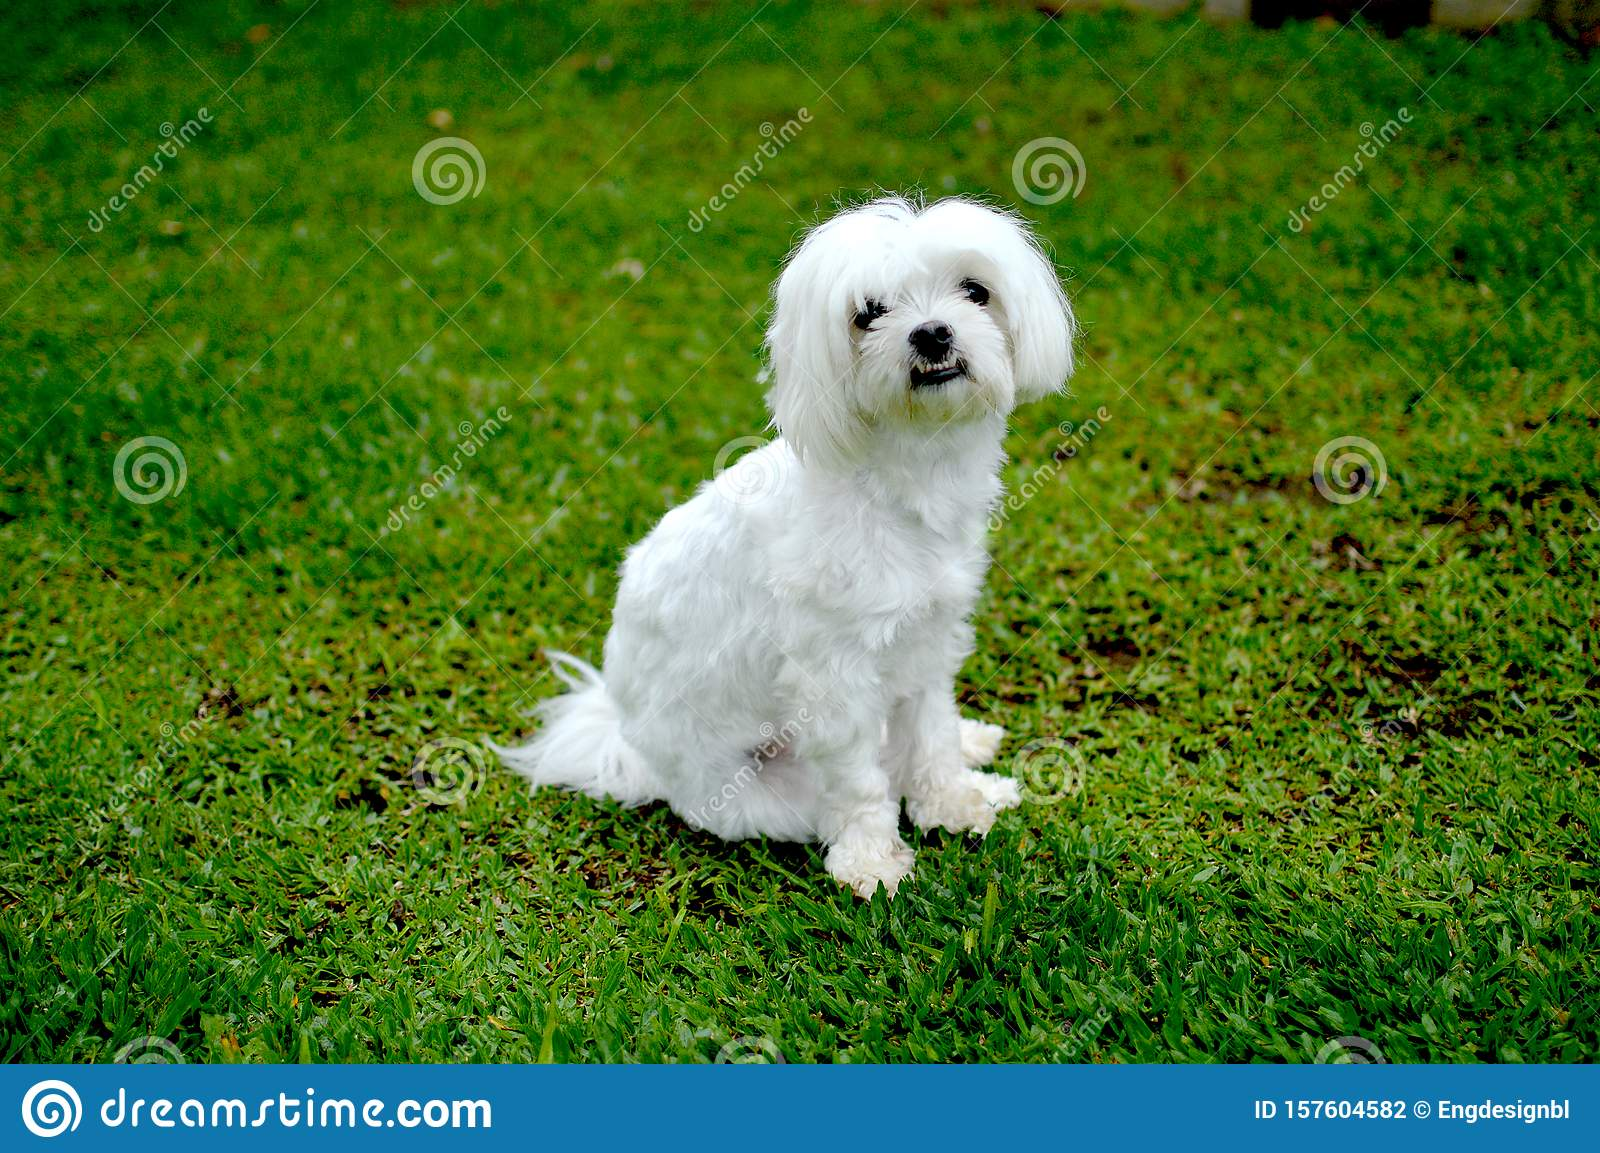 A White Maltese Dog In The Park Stock Photo Image Of White Malu 157604582